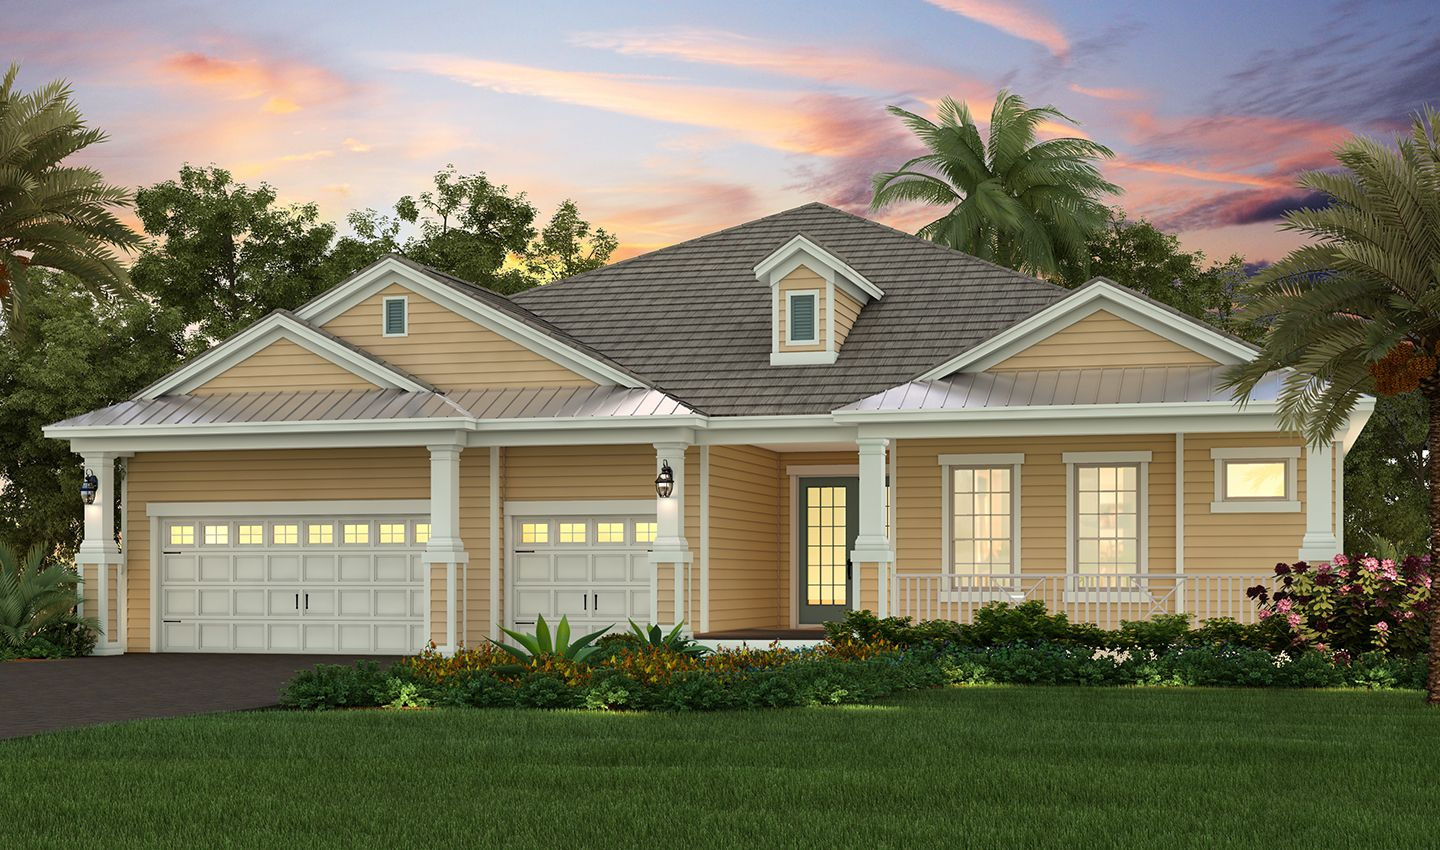 Single Family for Sale at Mirabay - Palm Beach 713 Manns Harbor Drive Apollo Beach, Florida 33572 United States